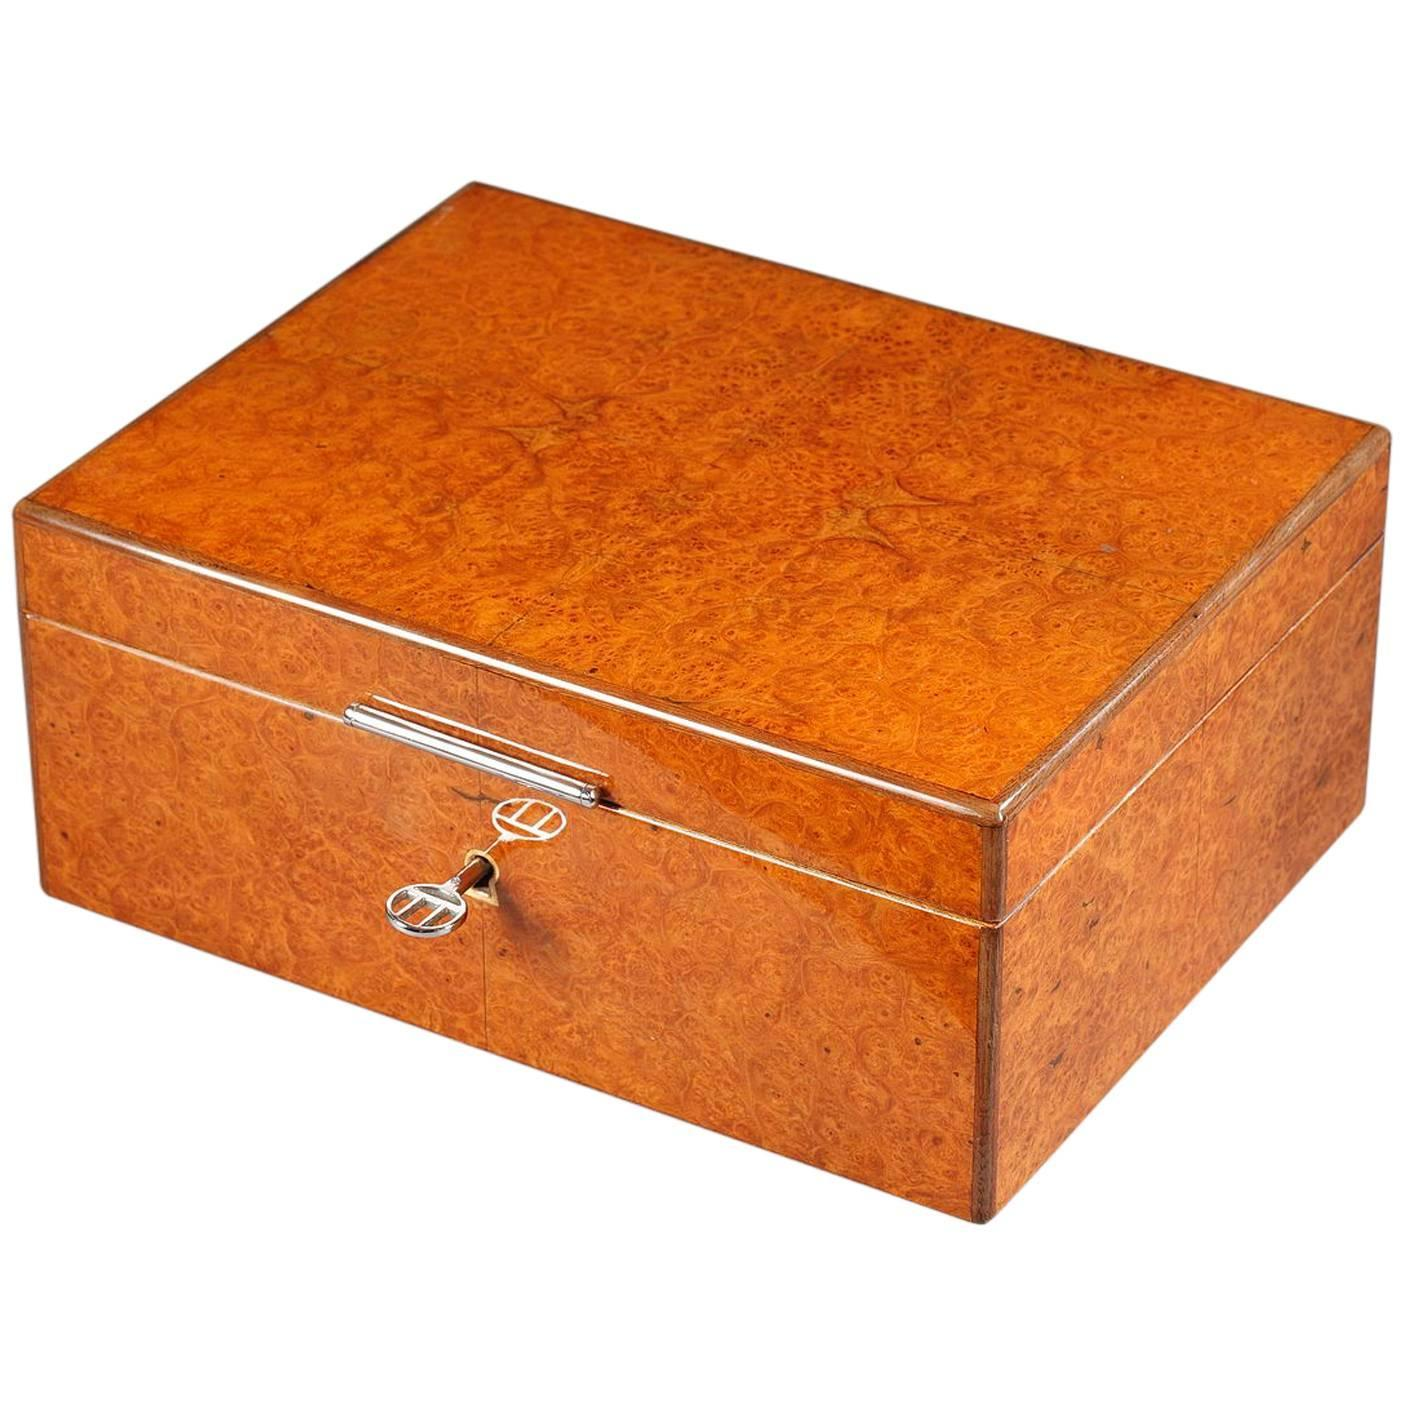 Dunhill Wooden Cigar Box 1970s At 1stdibs